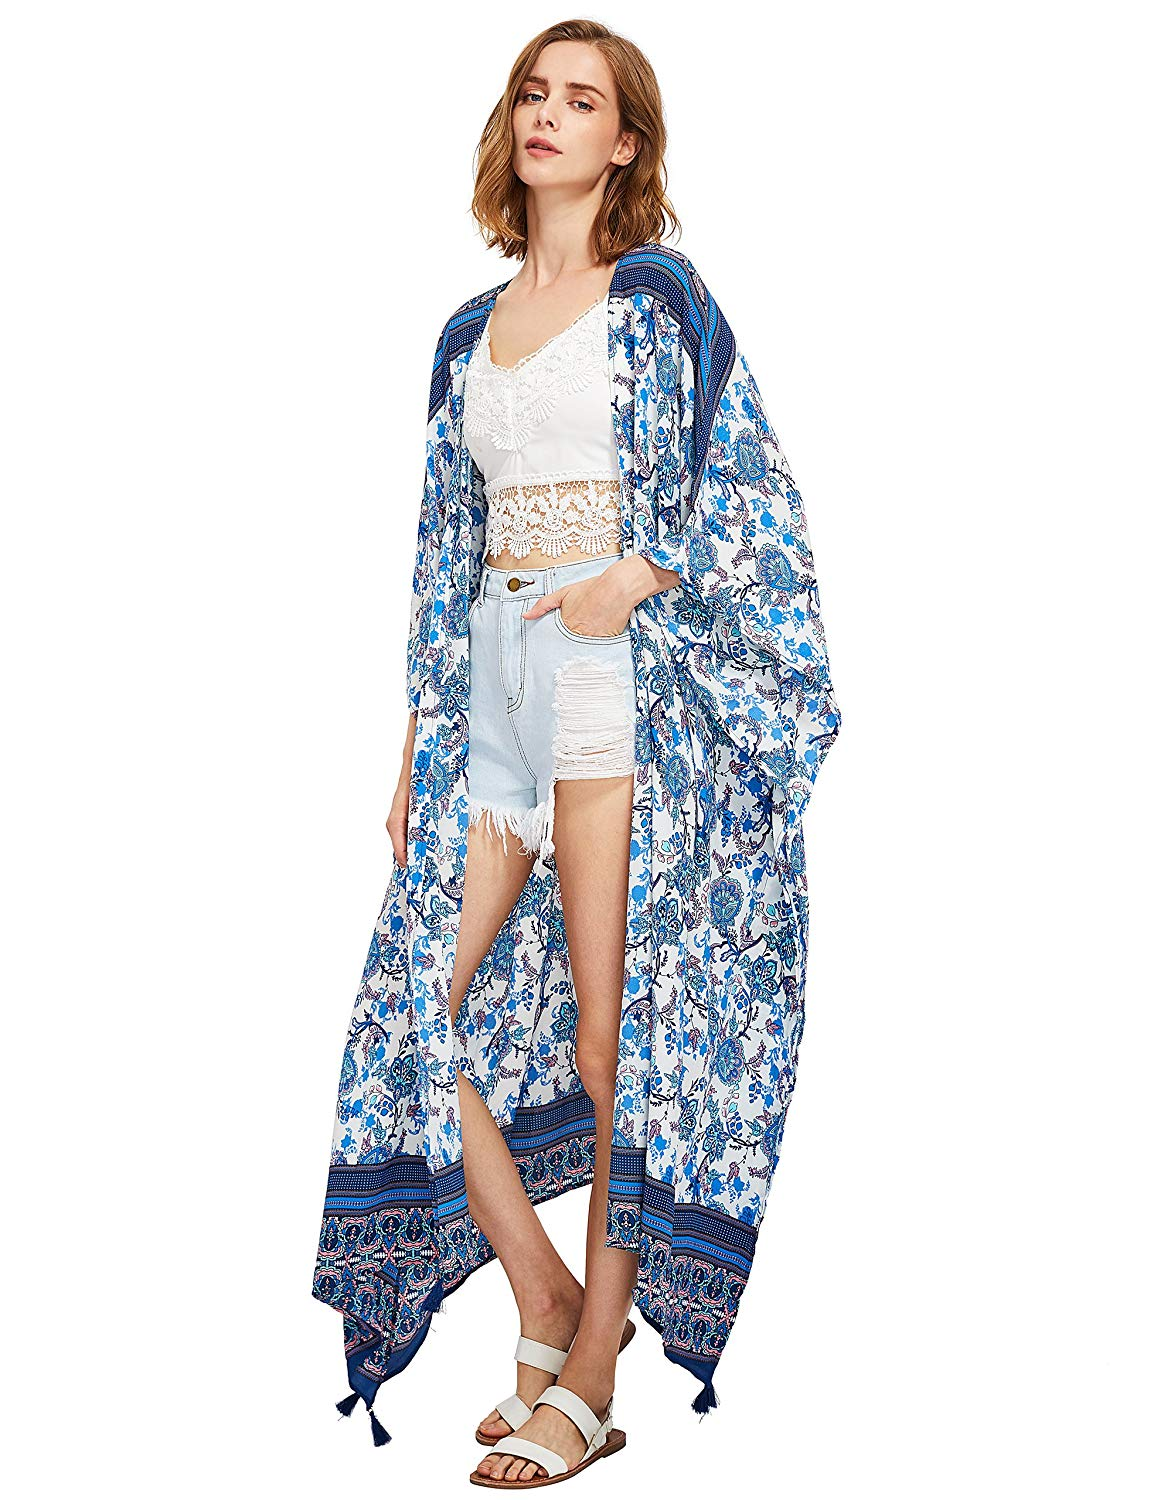 acf434cf190 SweatyRocks Women s Flowy Kimono Cardigan Open Front Maxi Dress ...